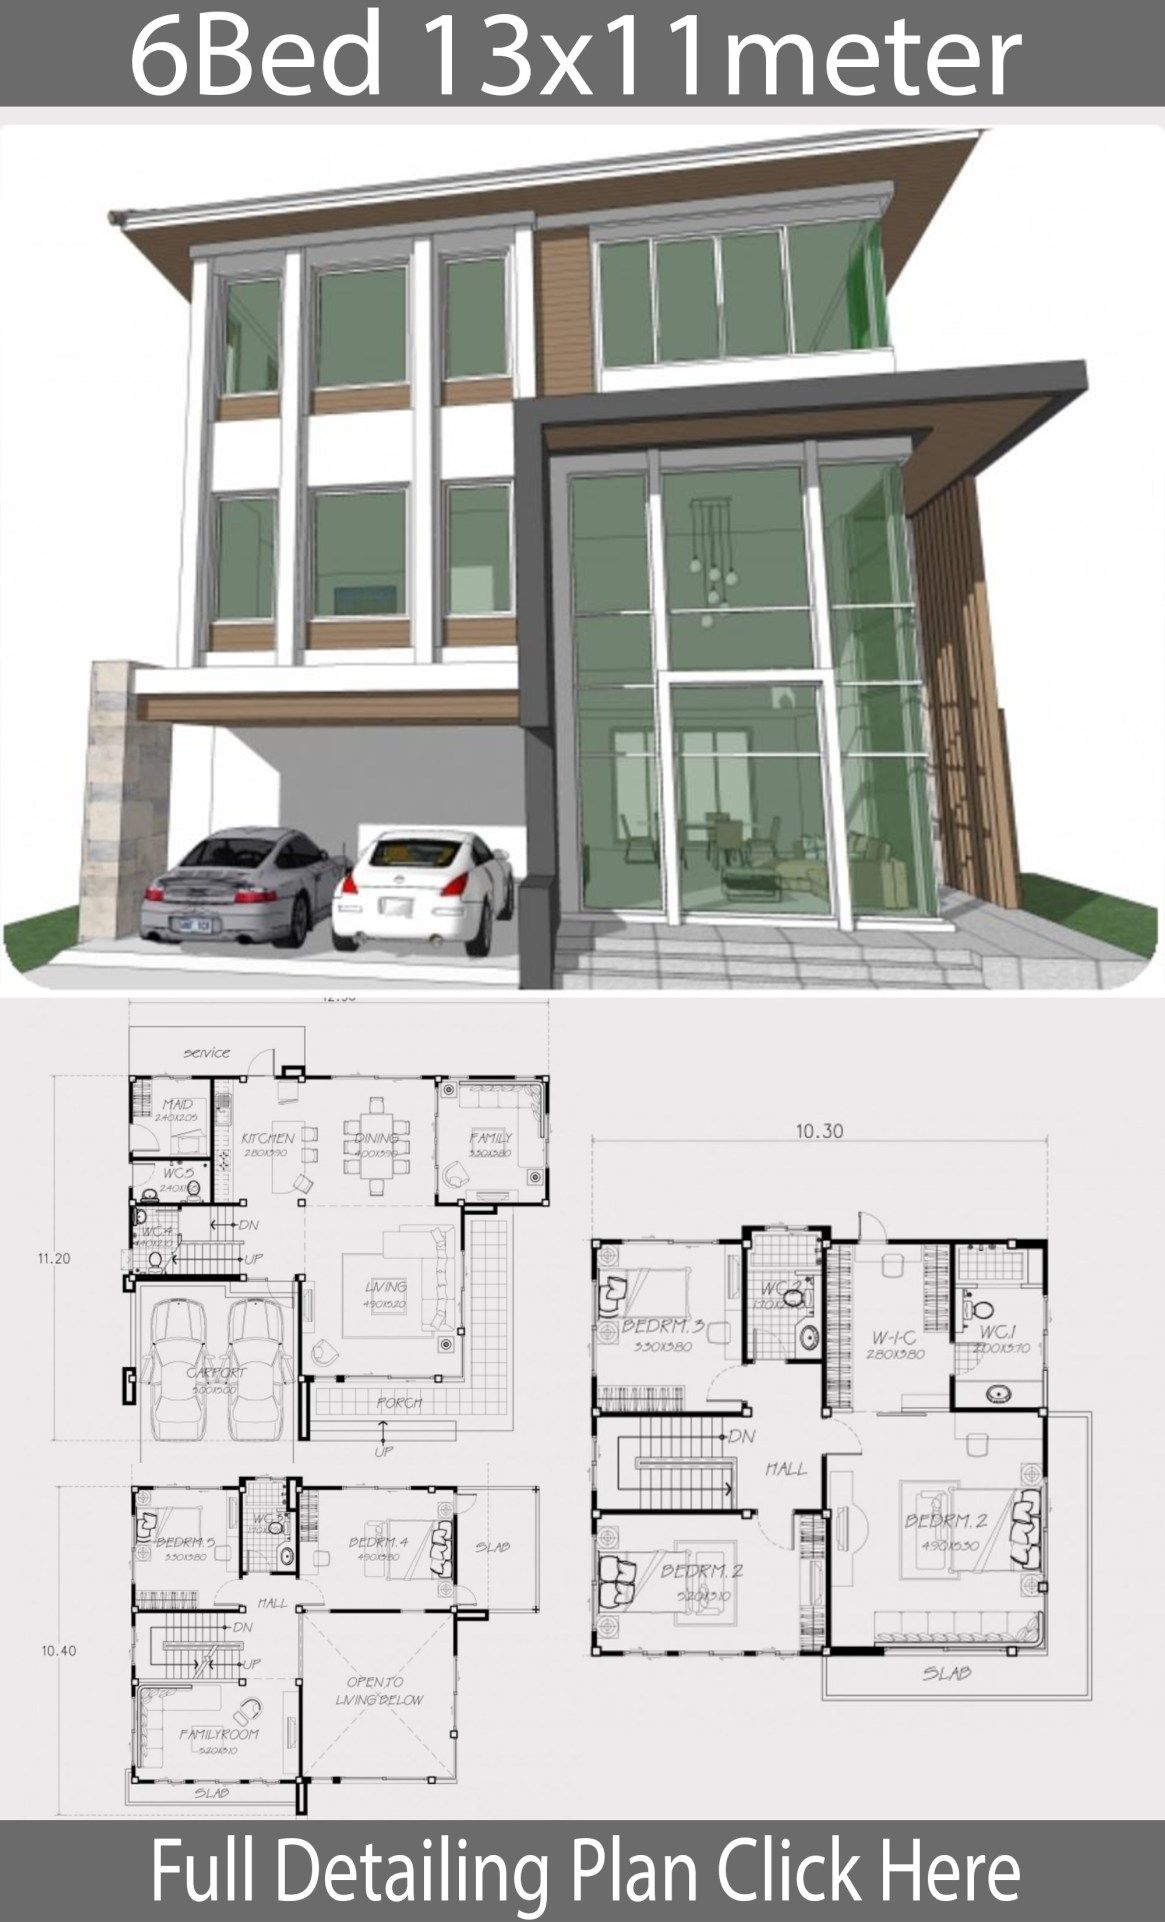 Home Design Plan 13x11m With 6 Bedrooms Home Design With Plansearch Home Building Design House Floor Design Home Design Plan